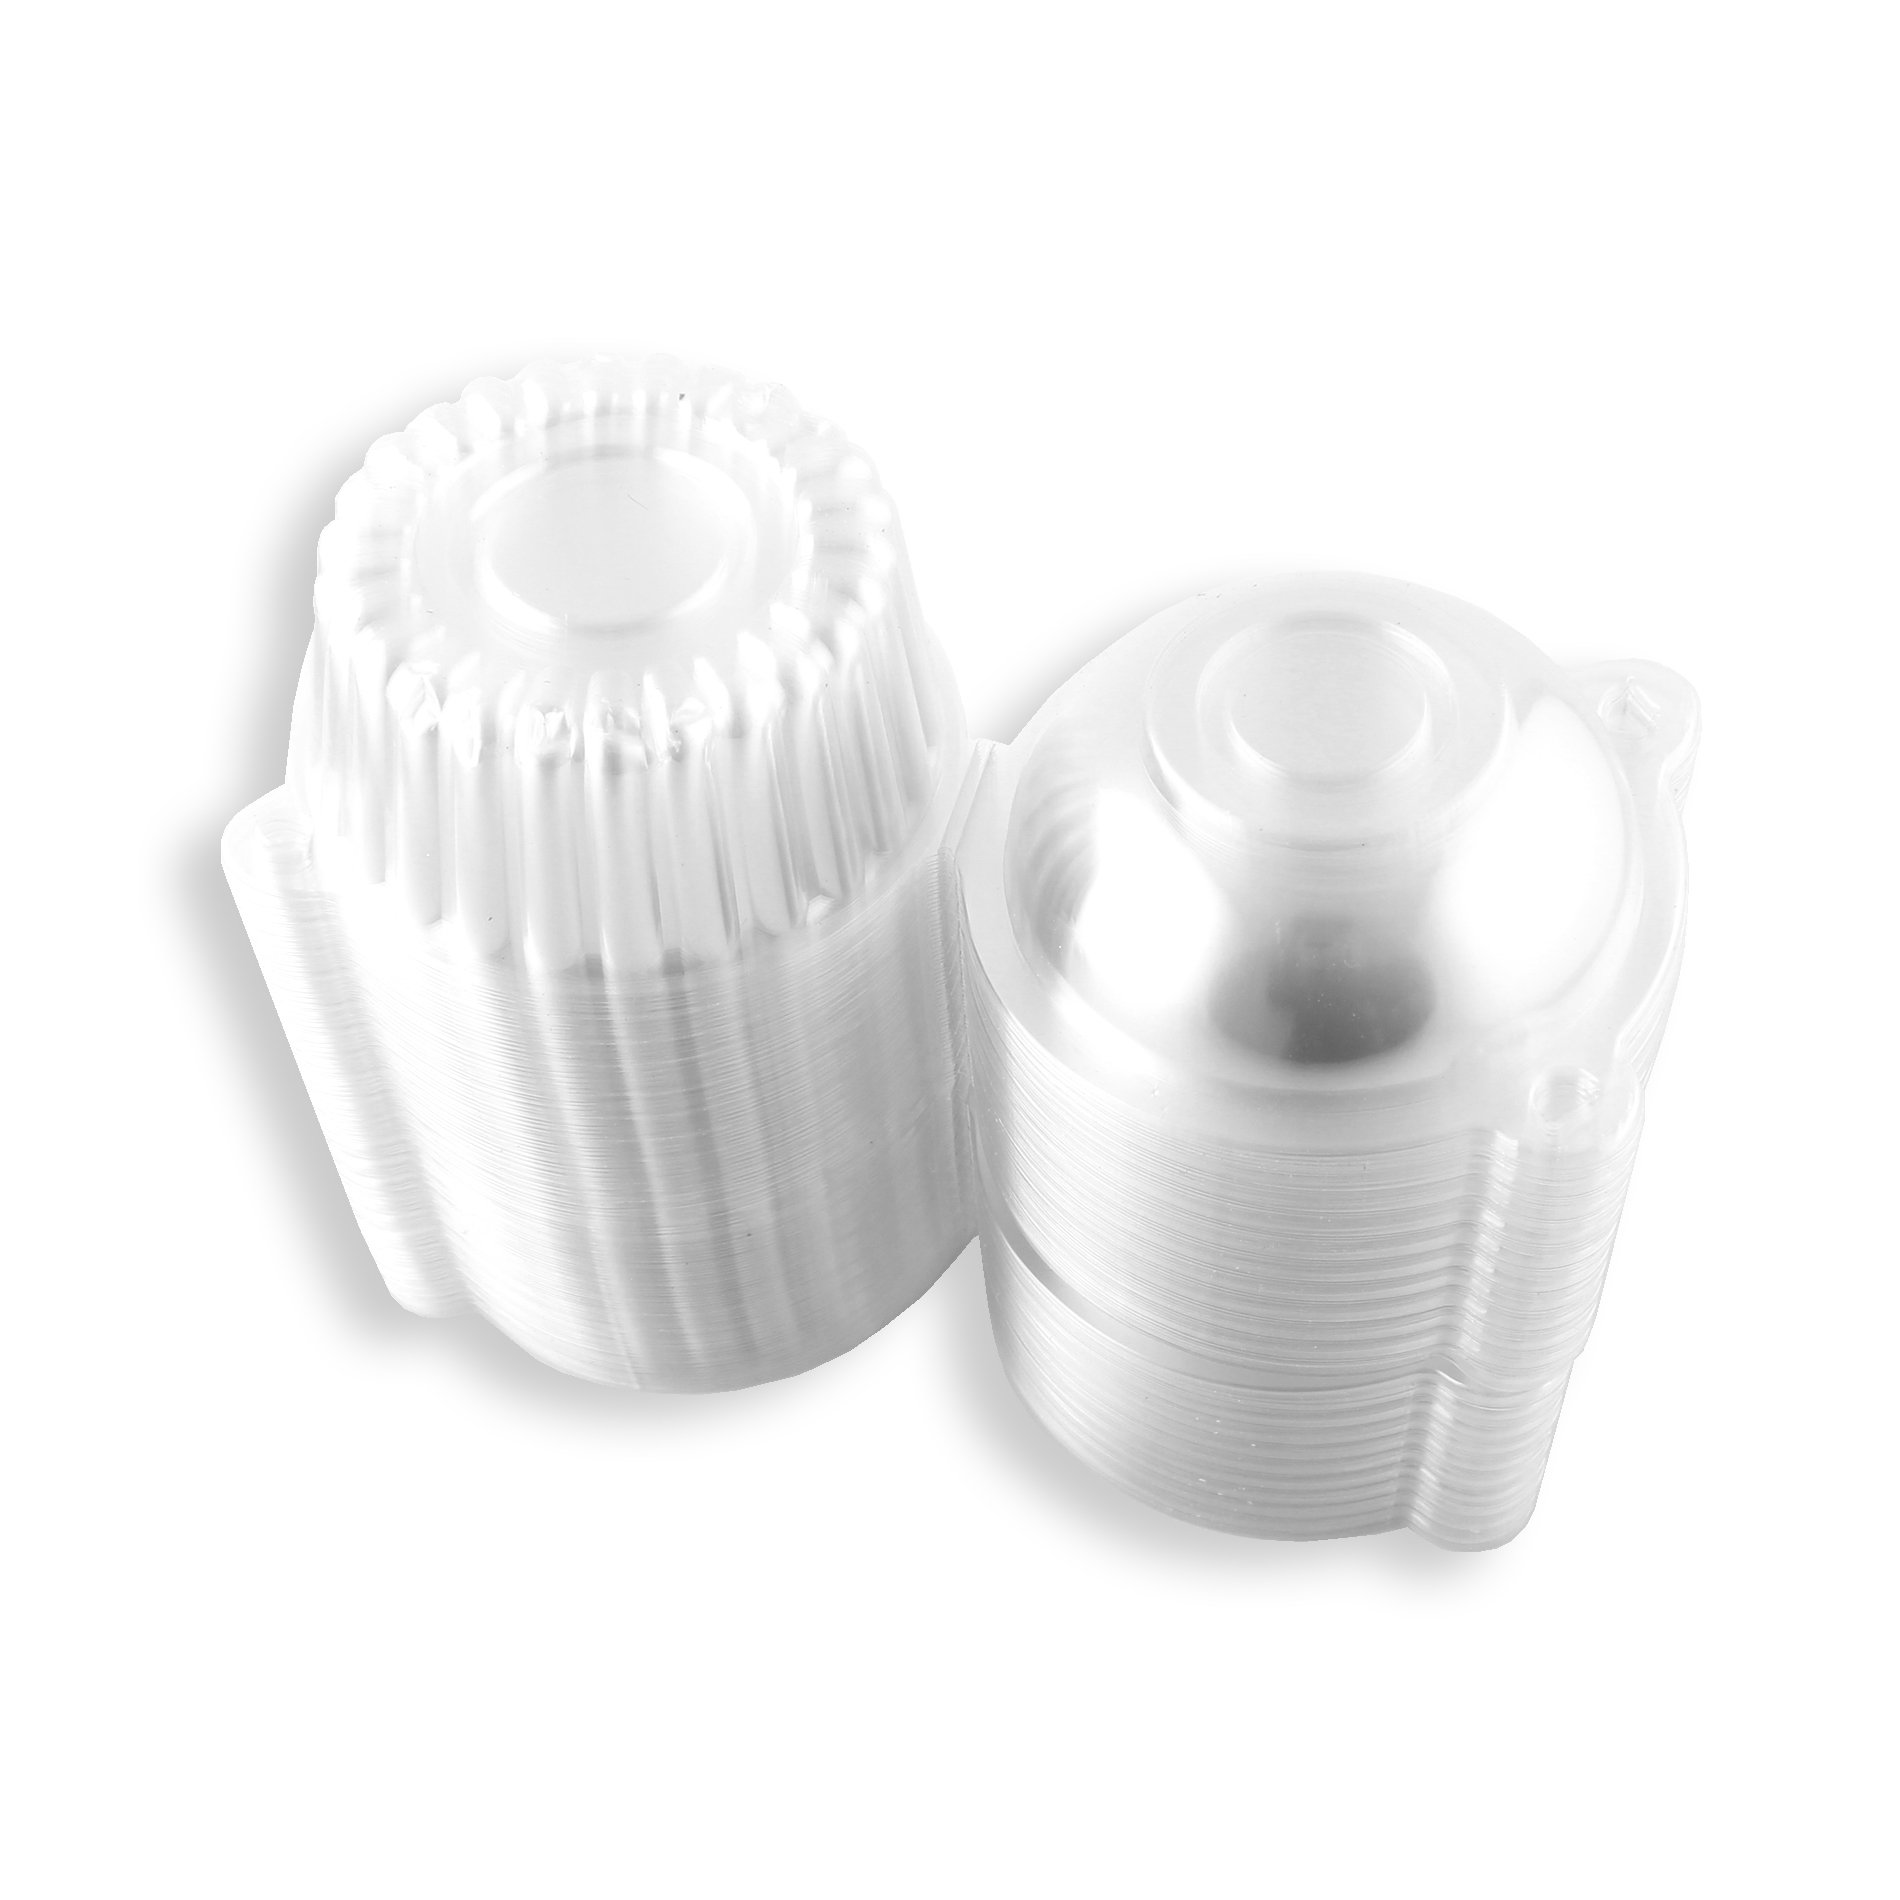 100pcs Clear Plastic Cupcake Cake Muffin Case Dome Holder Box Container by IDS (Image #3)